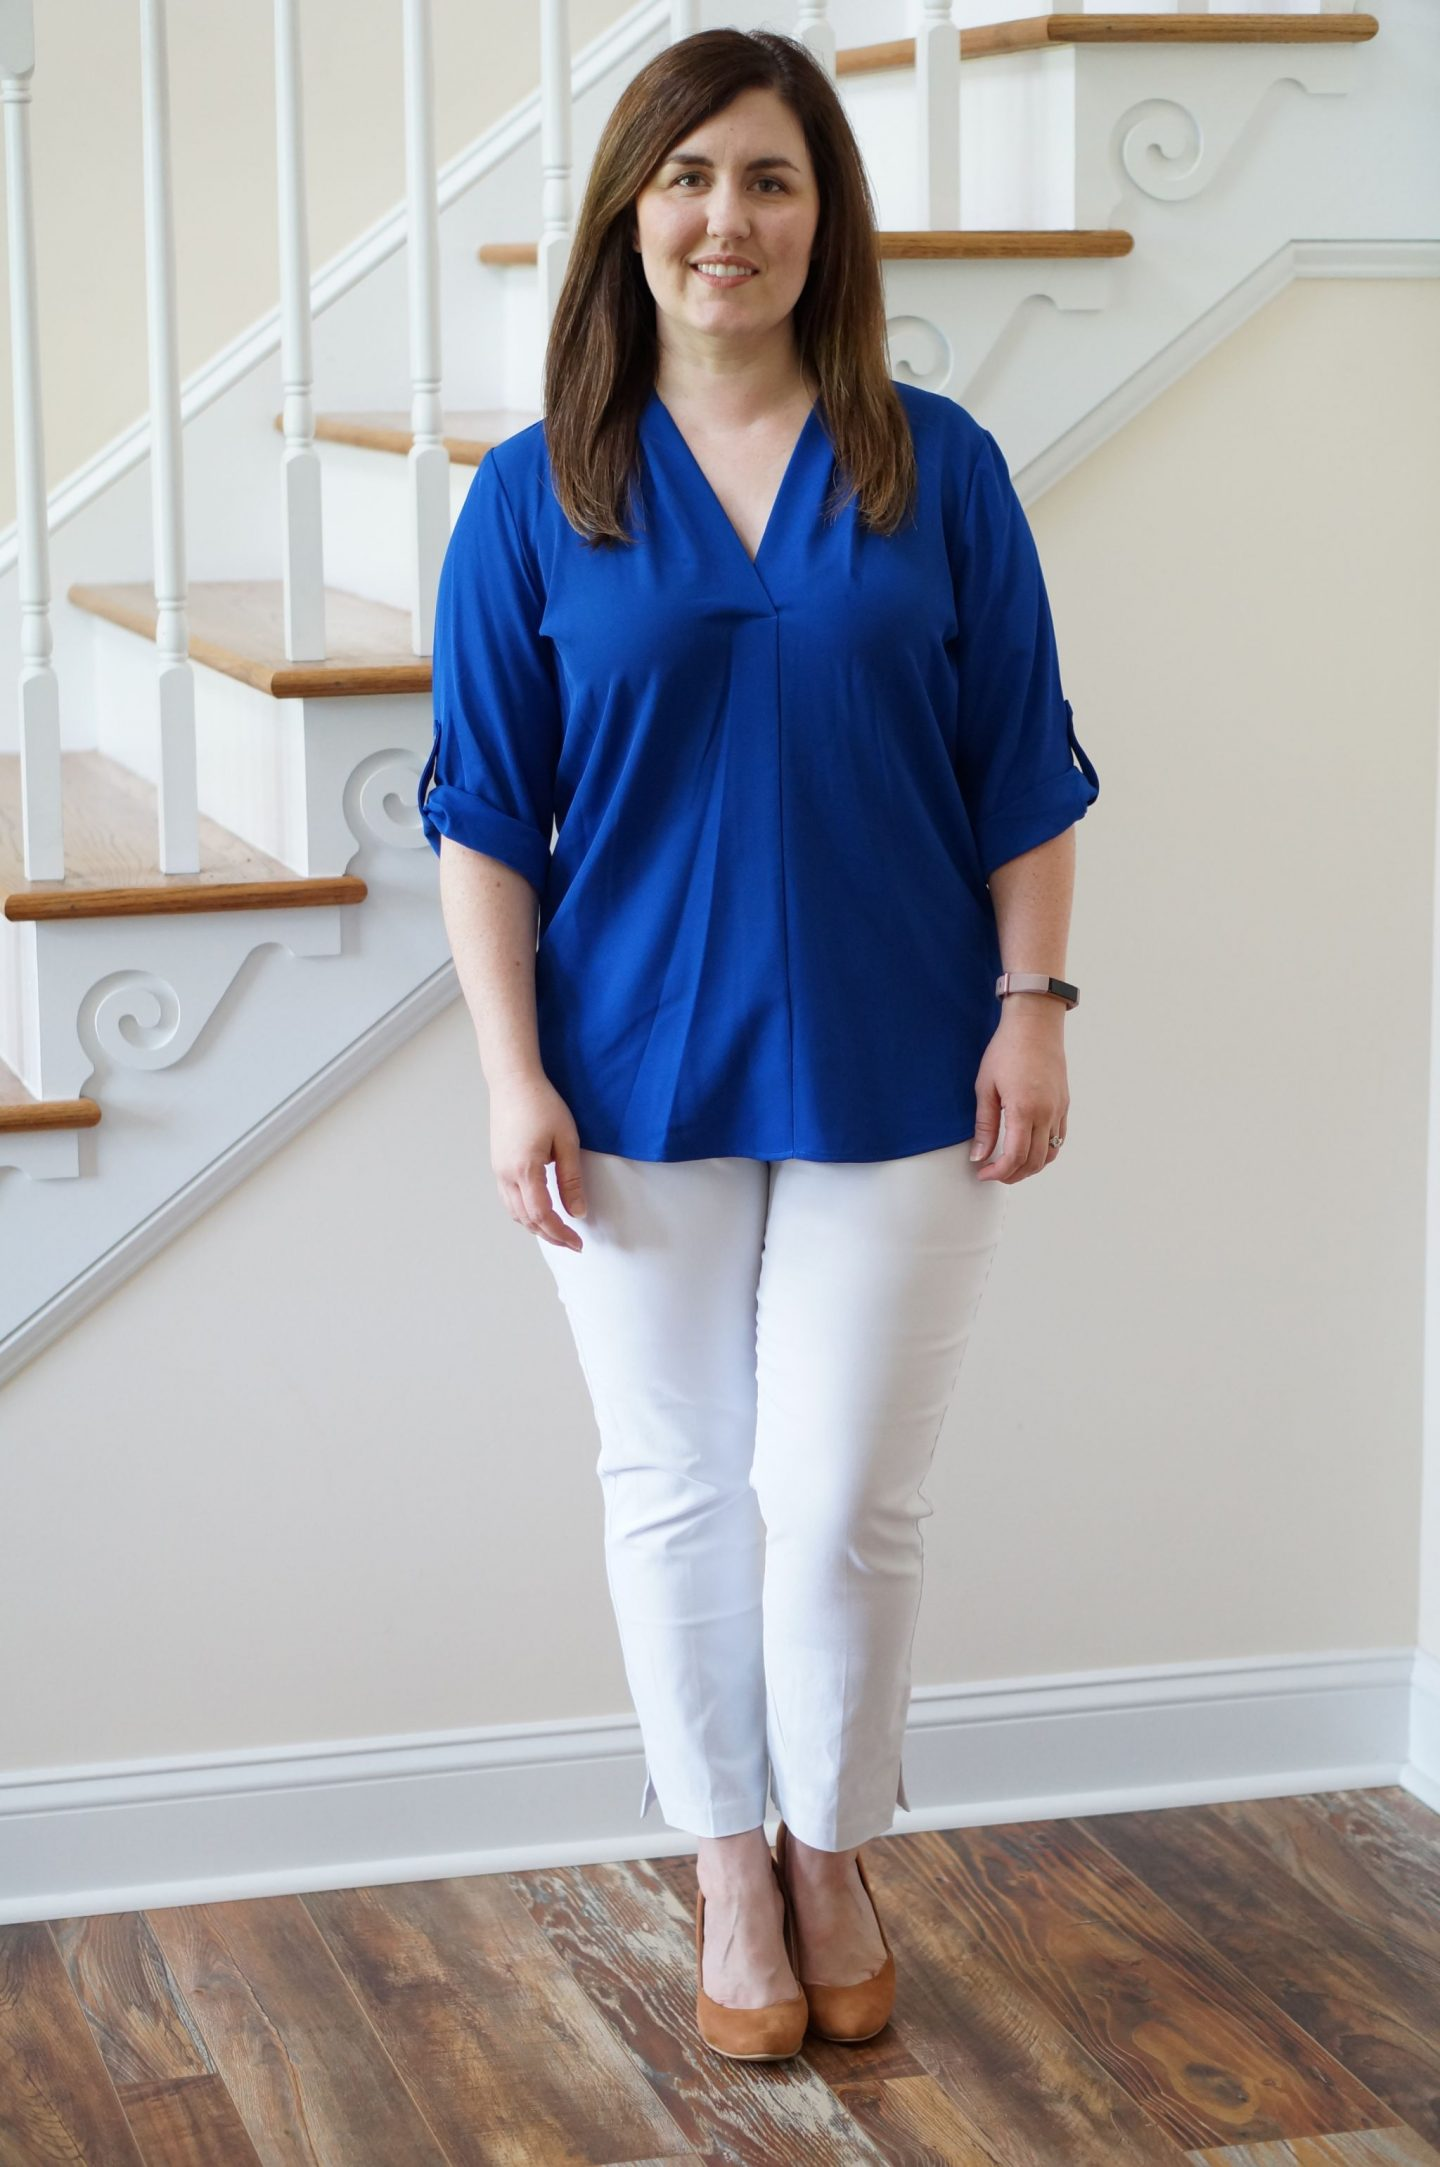 Popular North Carolina style blogger Rebecca Lately shares her August 2018 Stitch Fix outfits.  Check out what she kept and what she sent back!